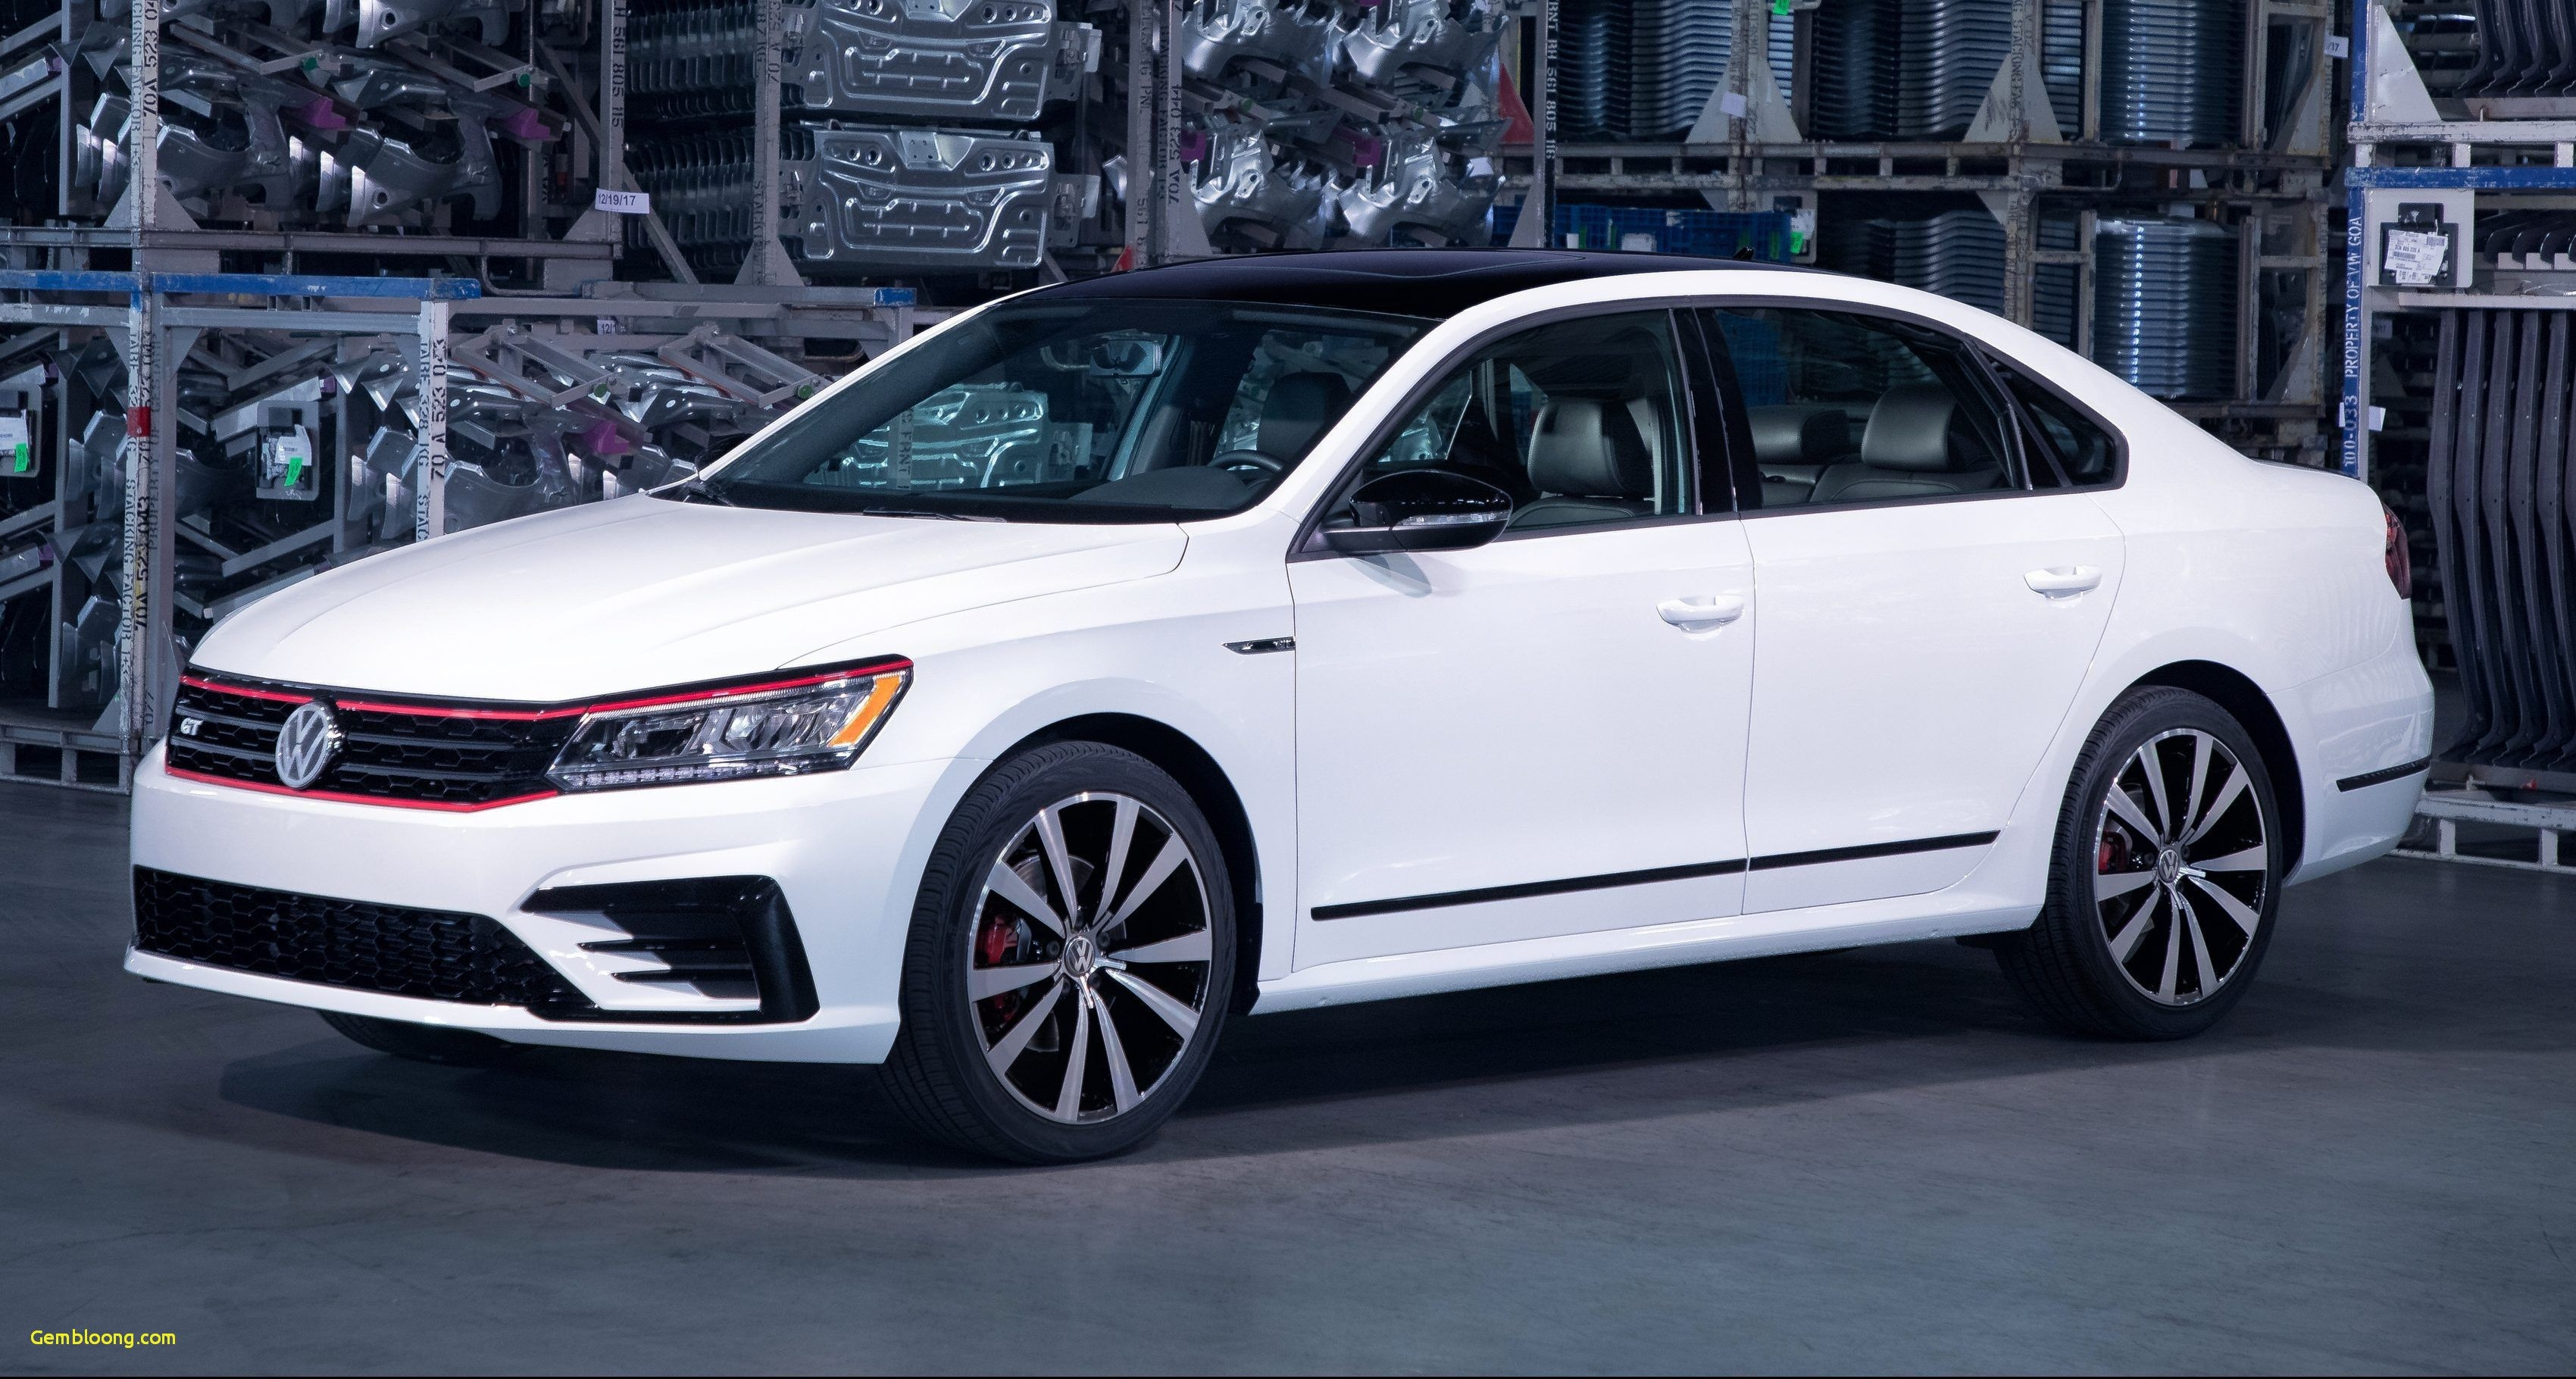 21 A 2020 VW Jetta Tdi Gli Price and Review